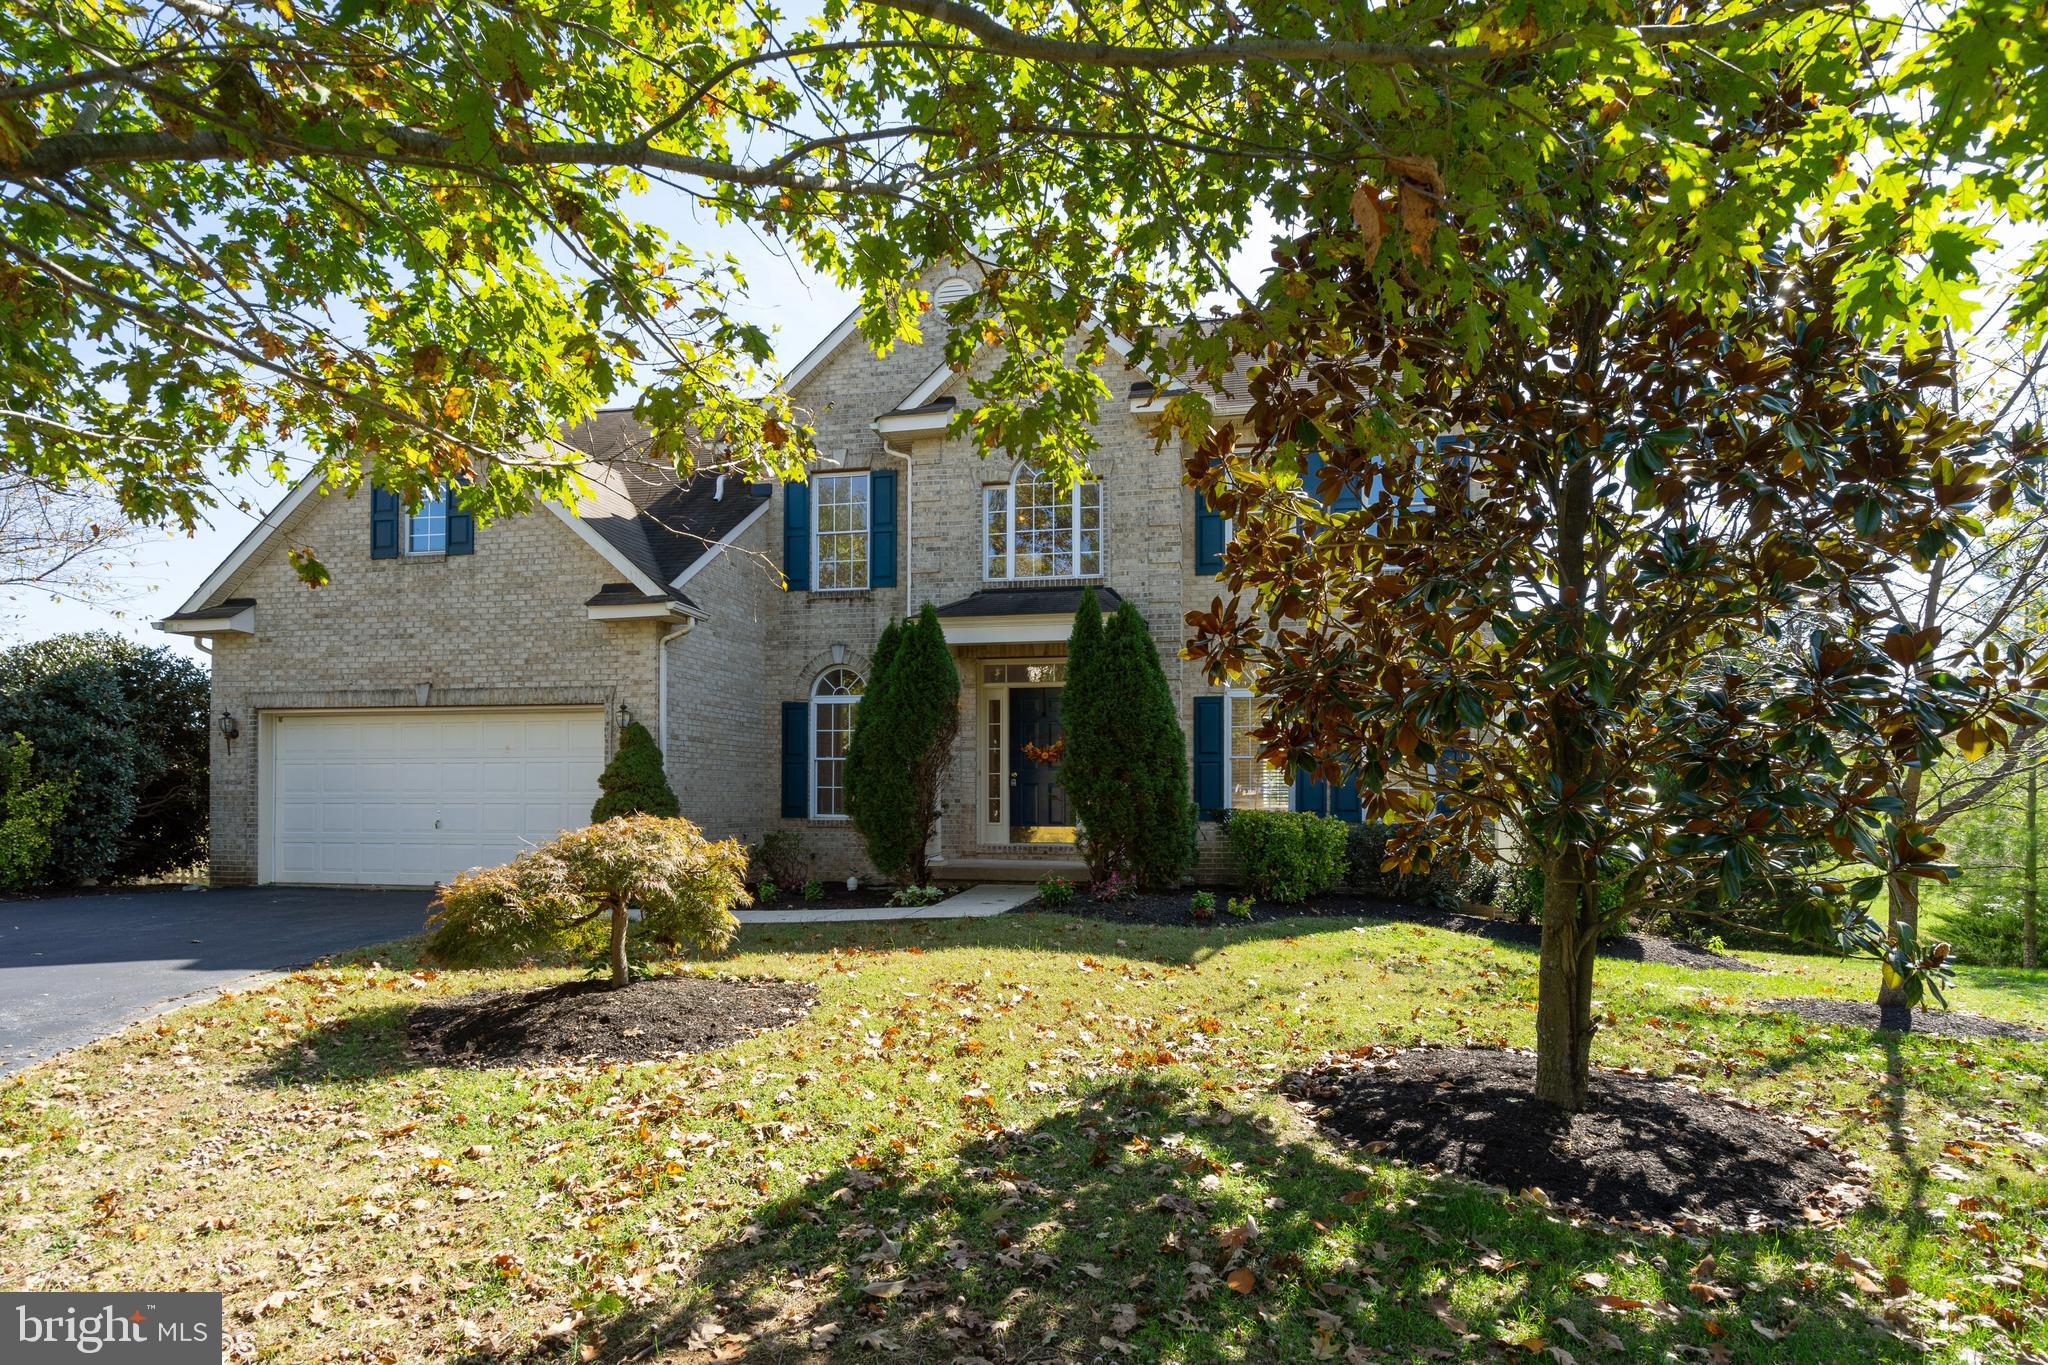 206 JENKINS CREEK COURT, WALKERSVILLE, MD 21793